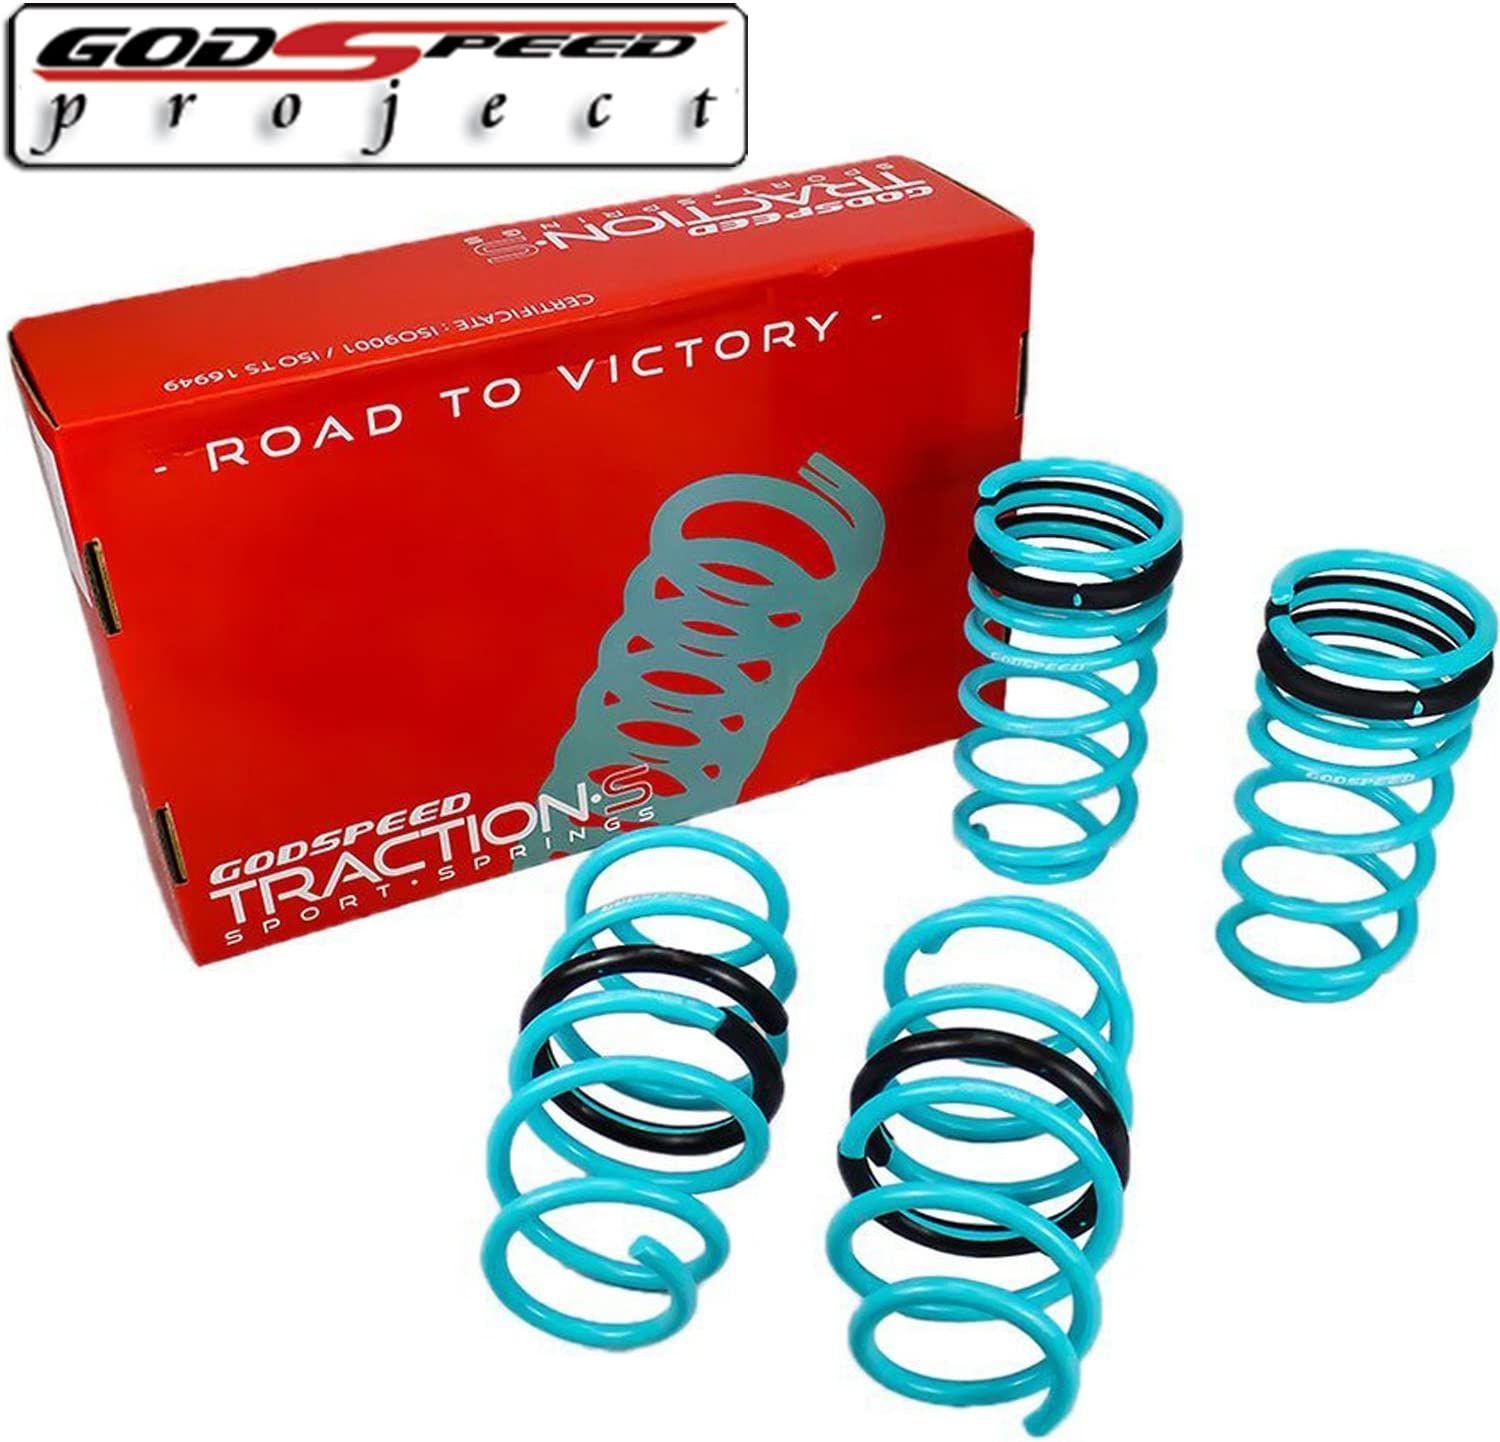 CP2 Godspeed LS-TS-HA-0004-A Traction-S Performance Lowering Springs For Honda Accord 2008-2012 All Models